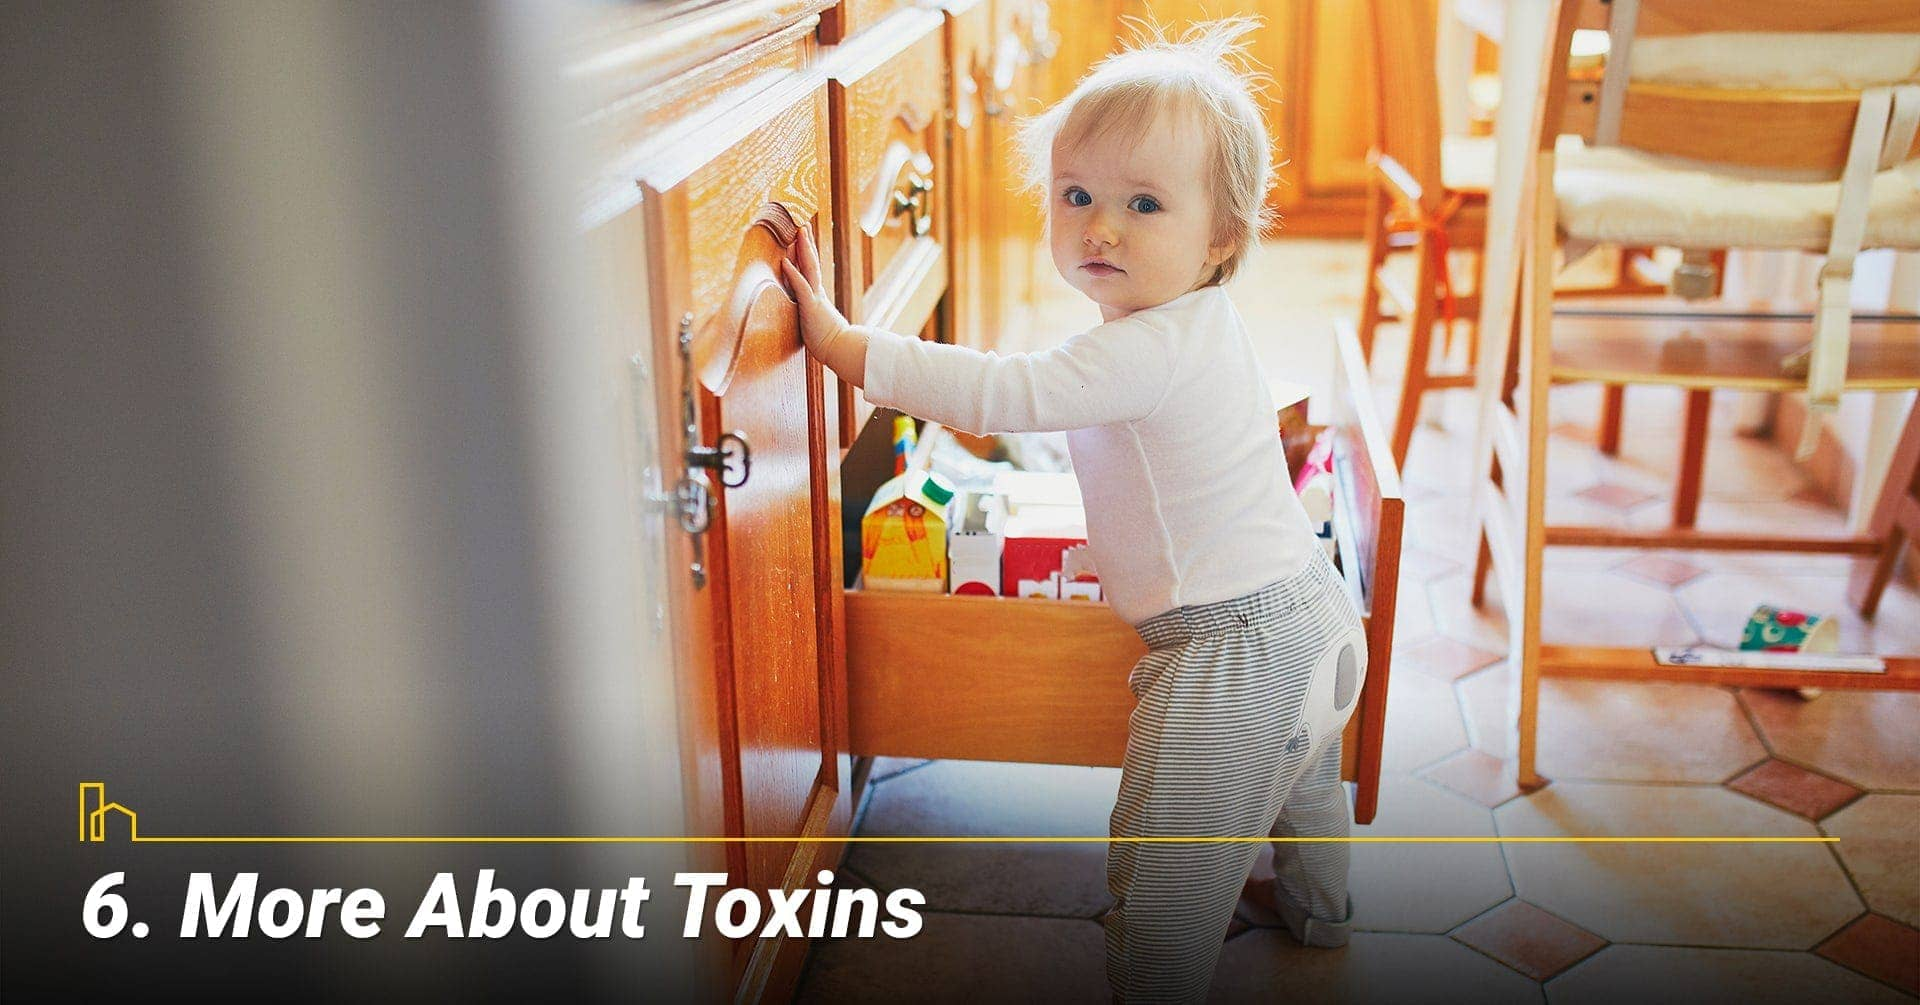 More About Toxins, keep household chemicals out of children reach